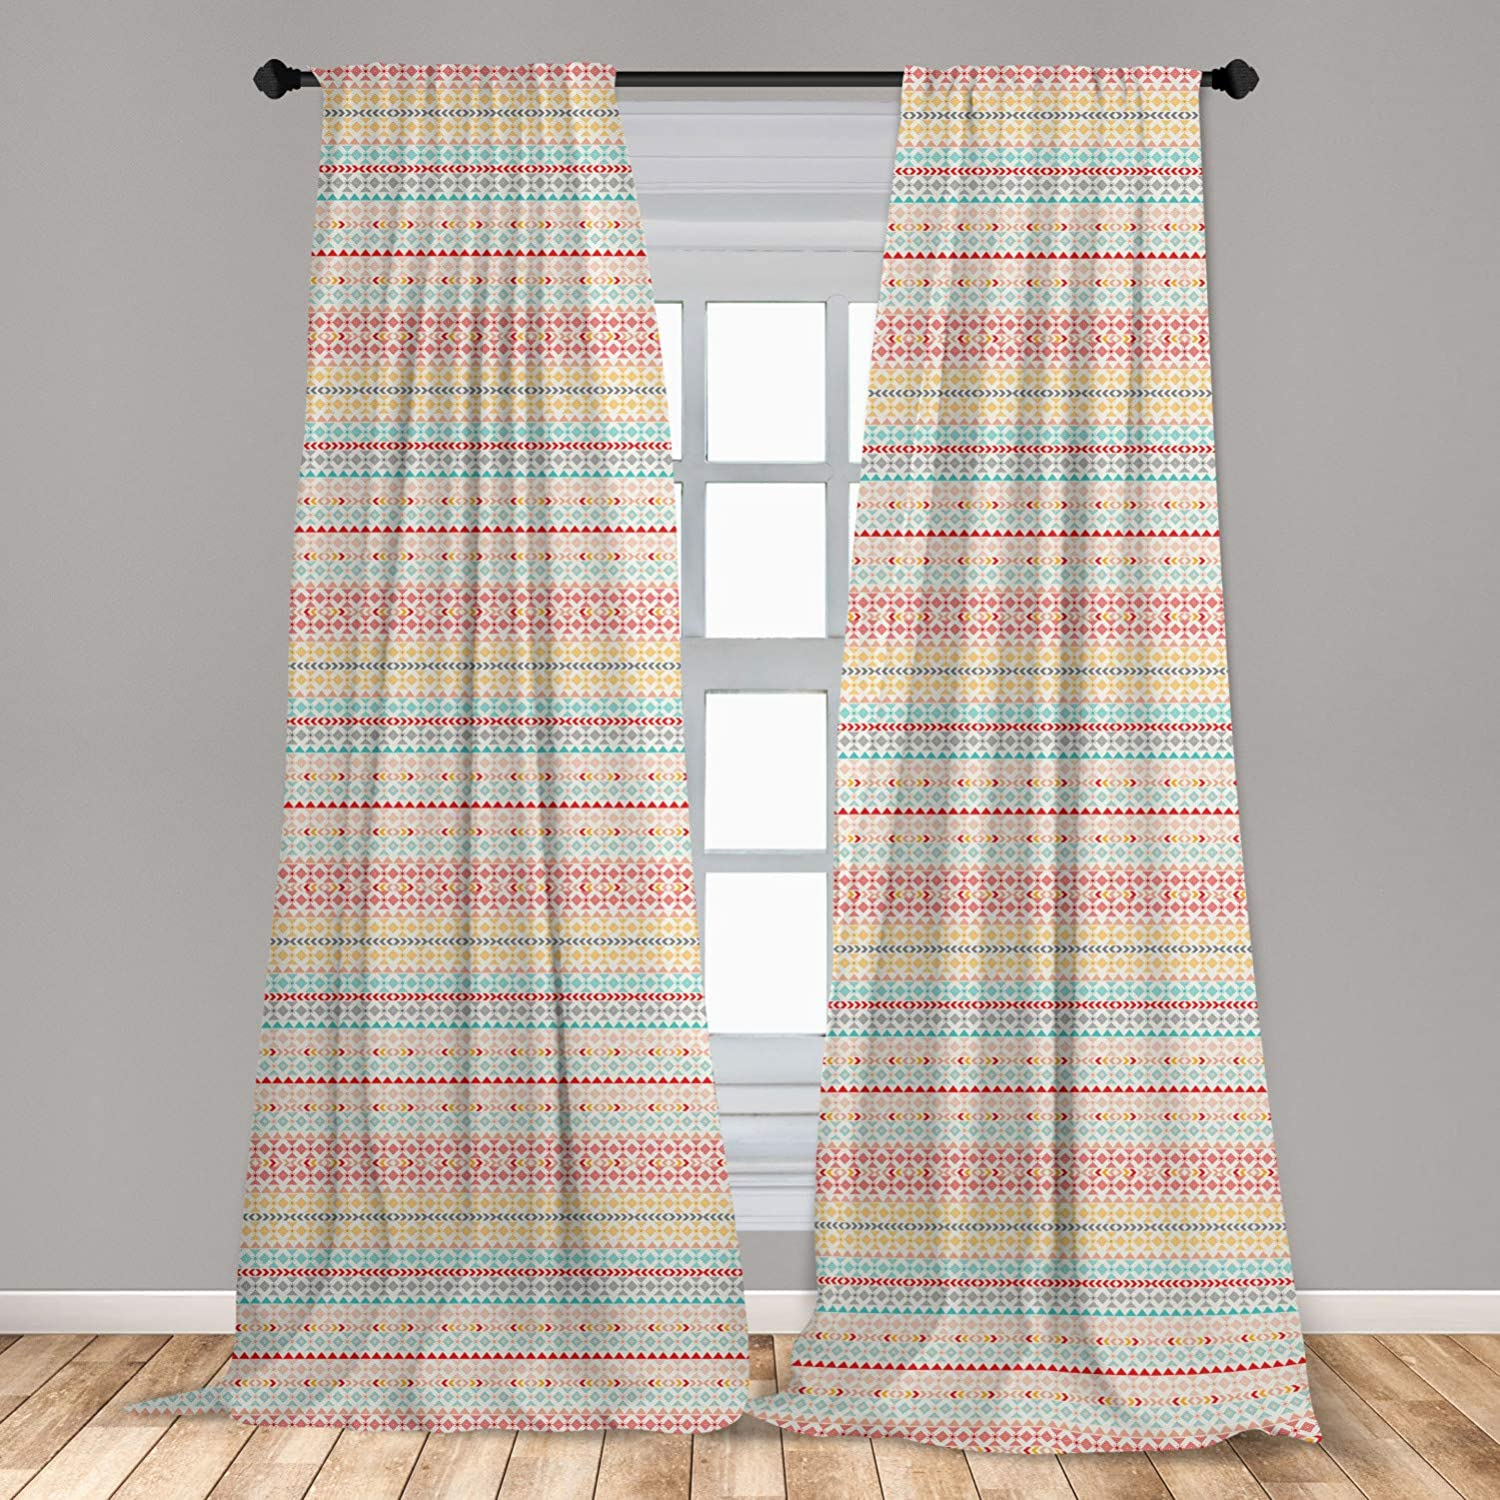 """Ambesonne Tribal Window Curtains, Vintage Seamless Geometrical Design with Bohemian Stripes Shapes Pattern, Lightweight Decorative Panels Set of 2 with Rod Pocket, 56"""" x 84"""", Blush Red"""